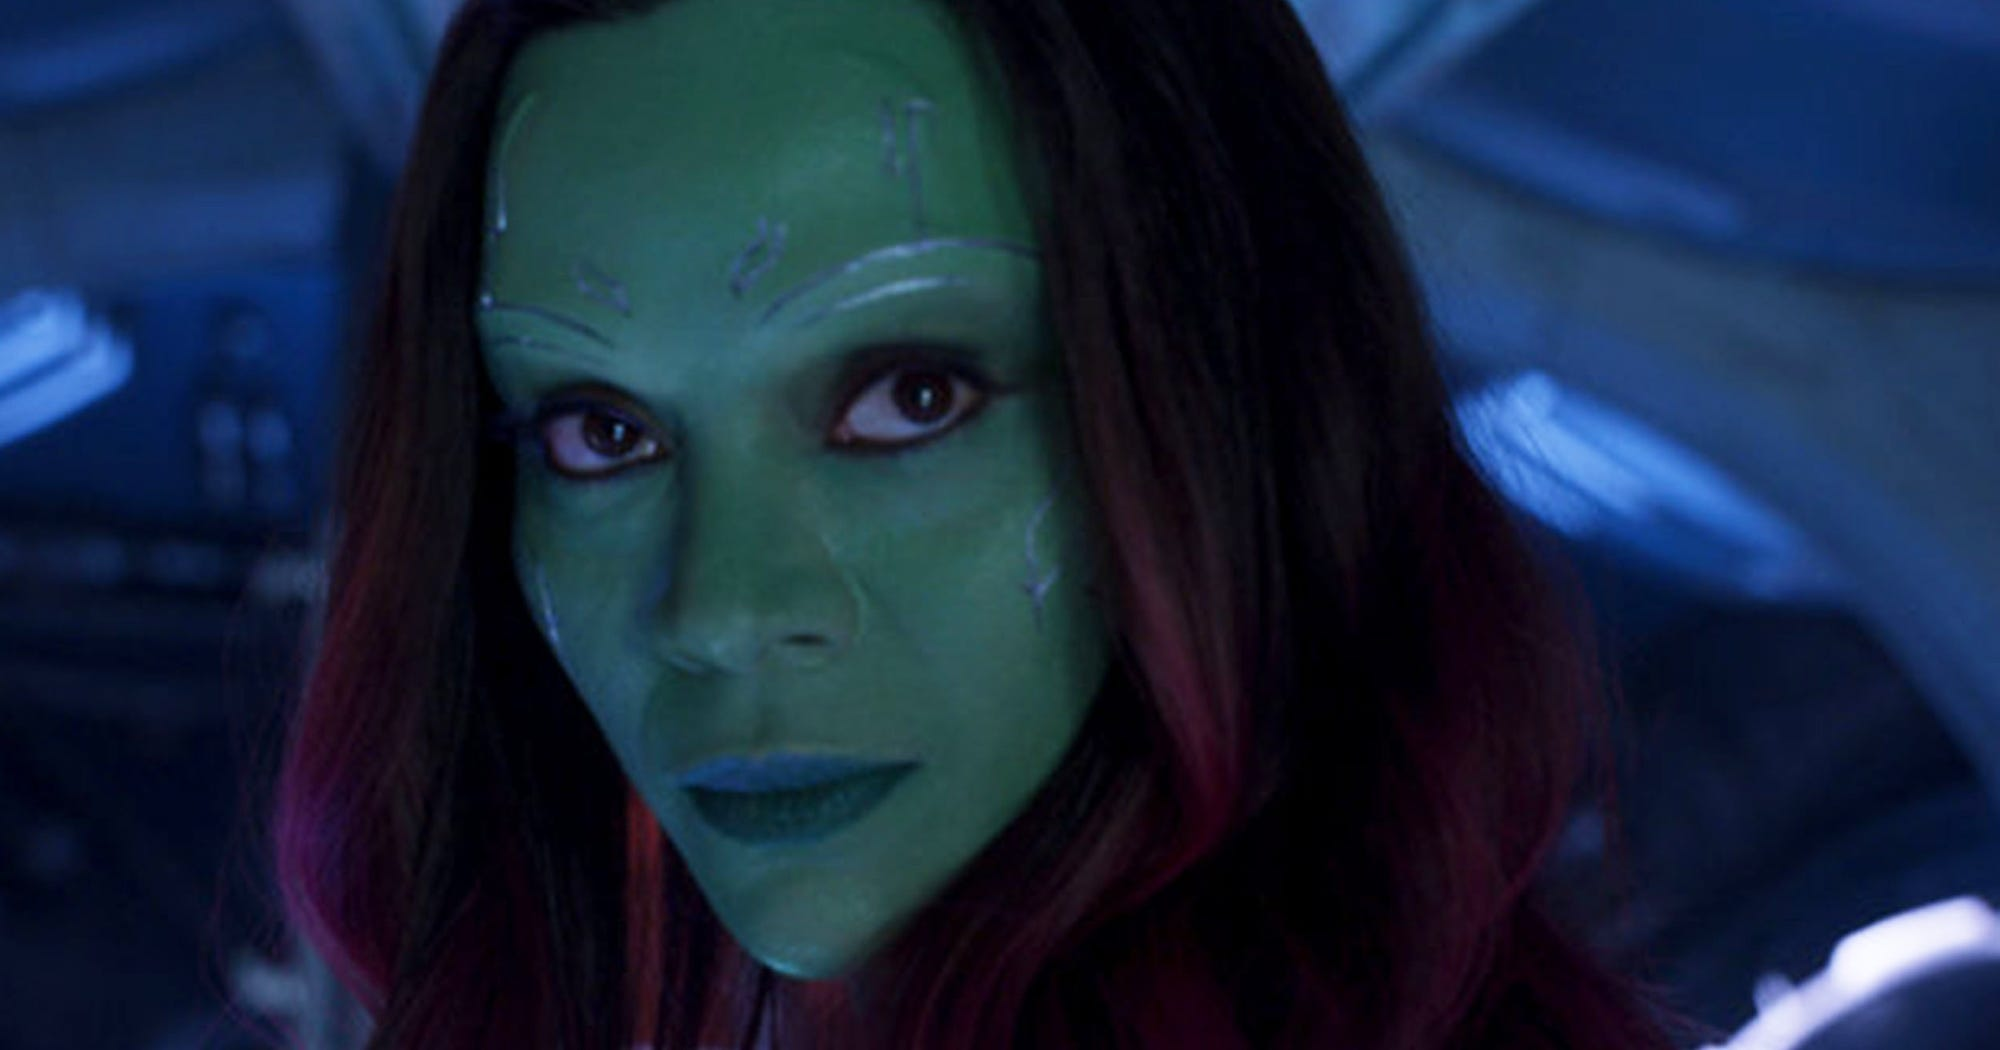 Why Is Zoe Saldana's Character Silent In All The Guardian Of The Galaxy Vol. 2 Trailers?